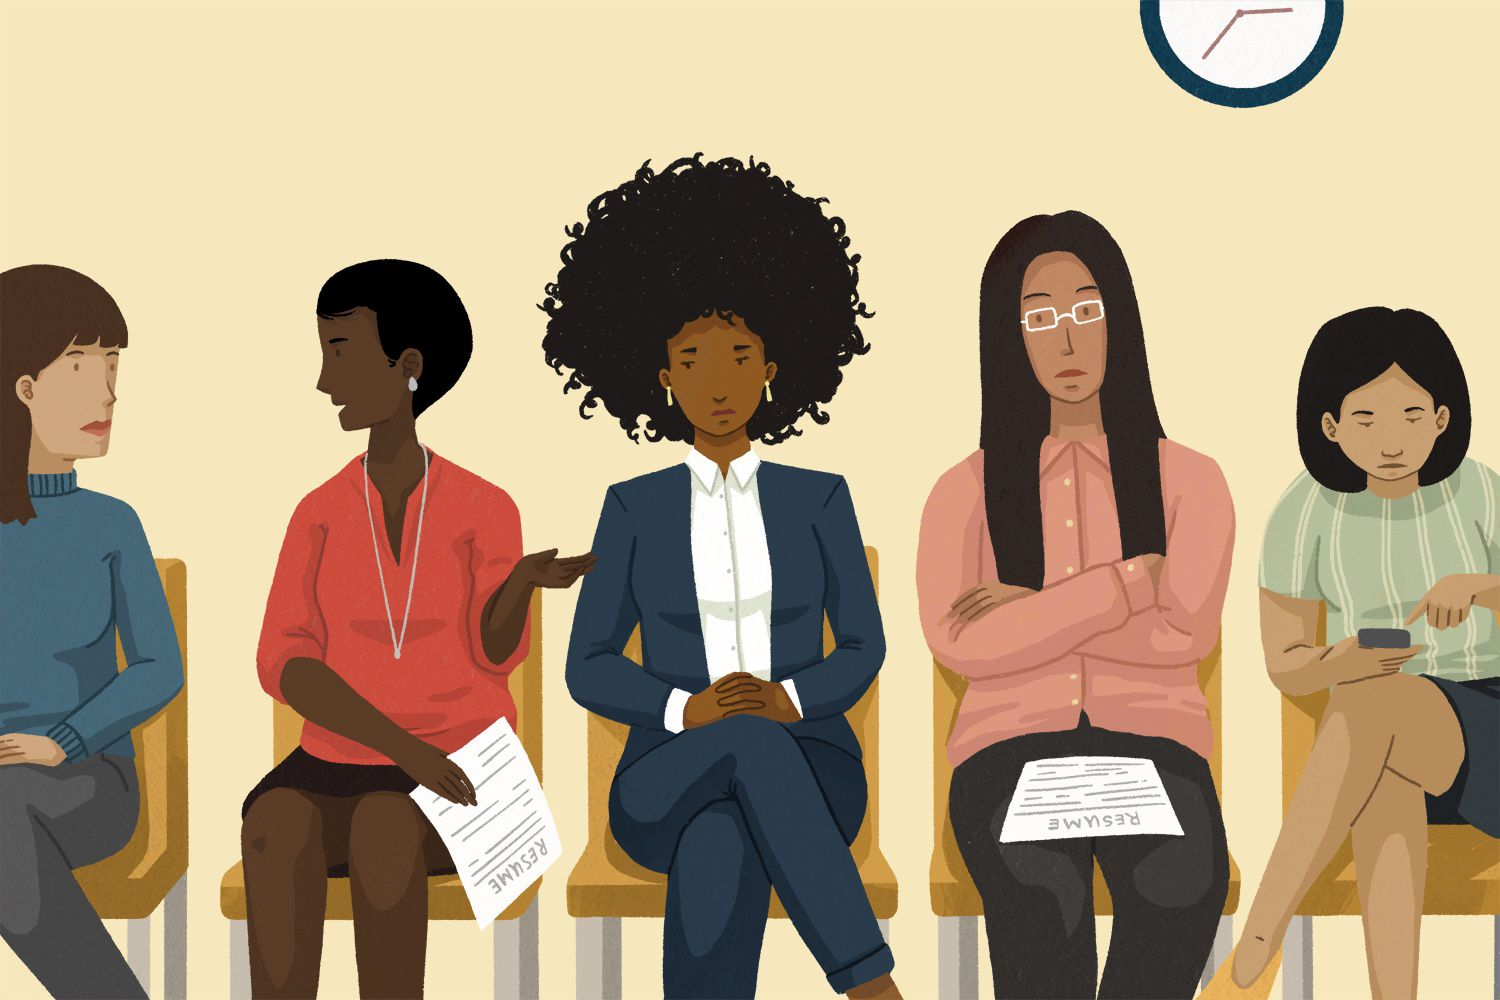 drawing of women waiting in an office lobby with resumes